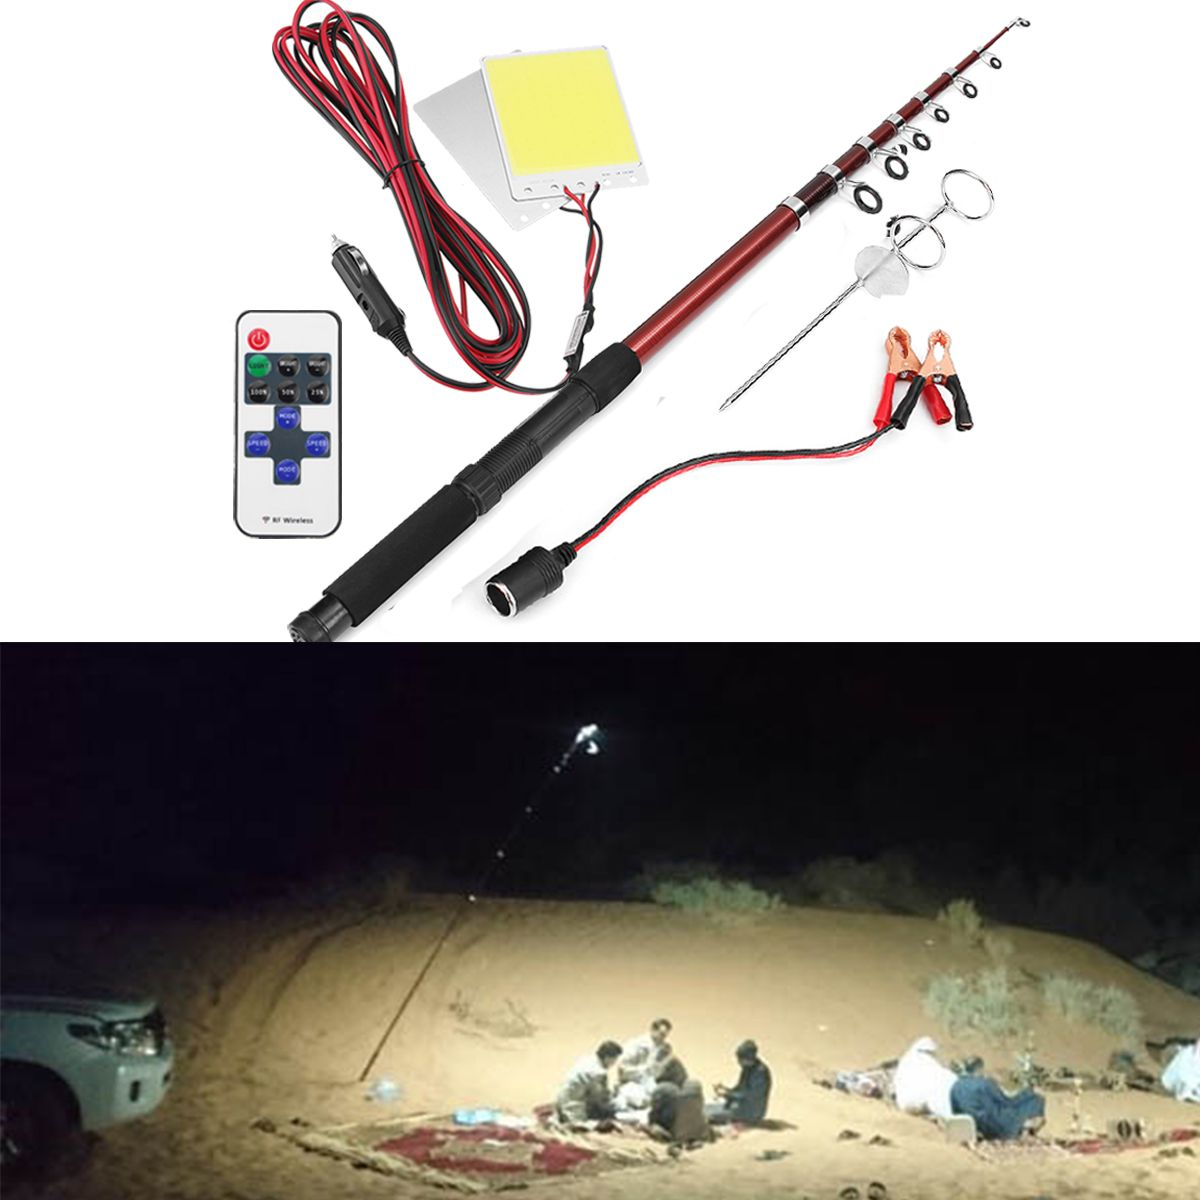 12v 2 96w Telescopic Fishing Lamp Car Rod Light Led Camping Lamp Remote Controller Car Lantern Fishing Hunting From Sports Outdoor On Banggood Com Camping Lamp Led Lights Led Lantern Lights